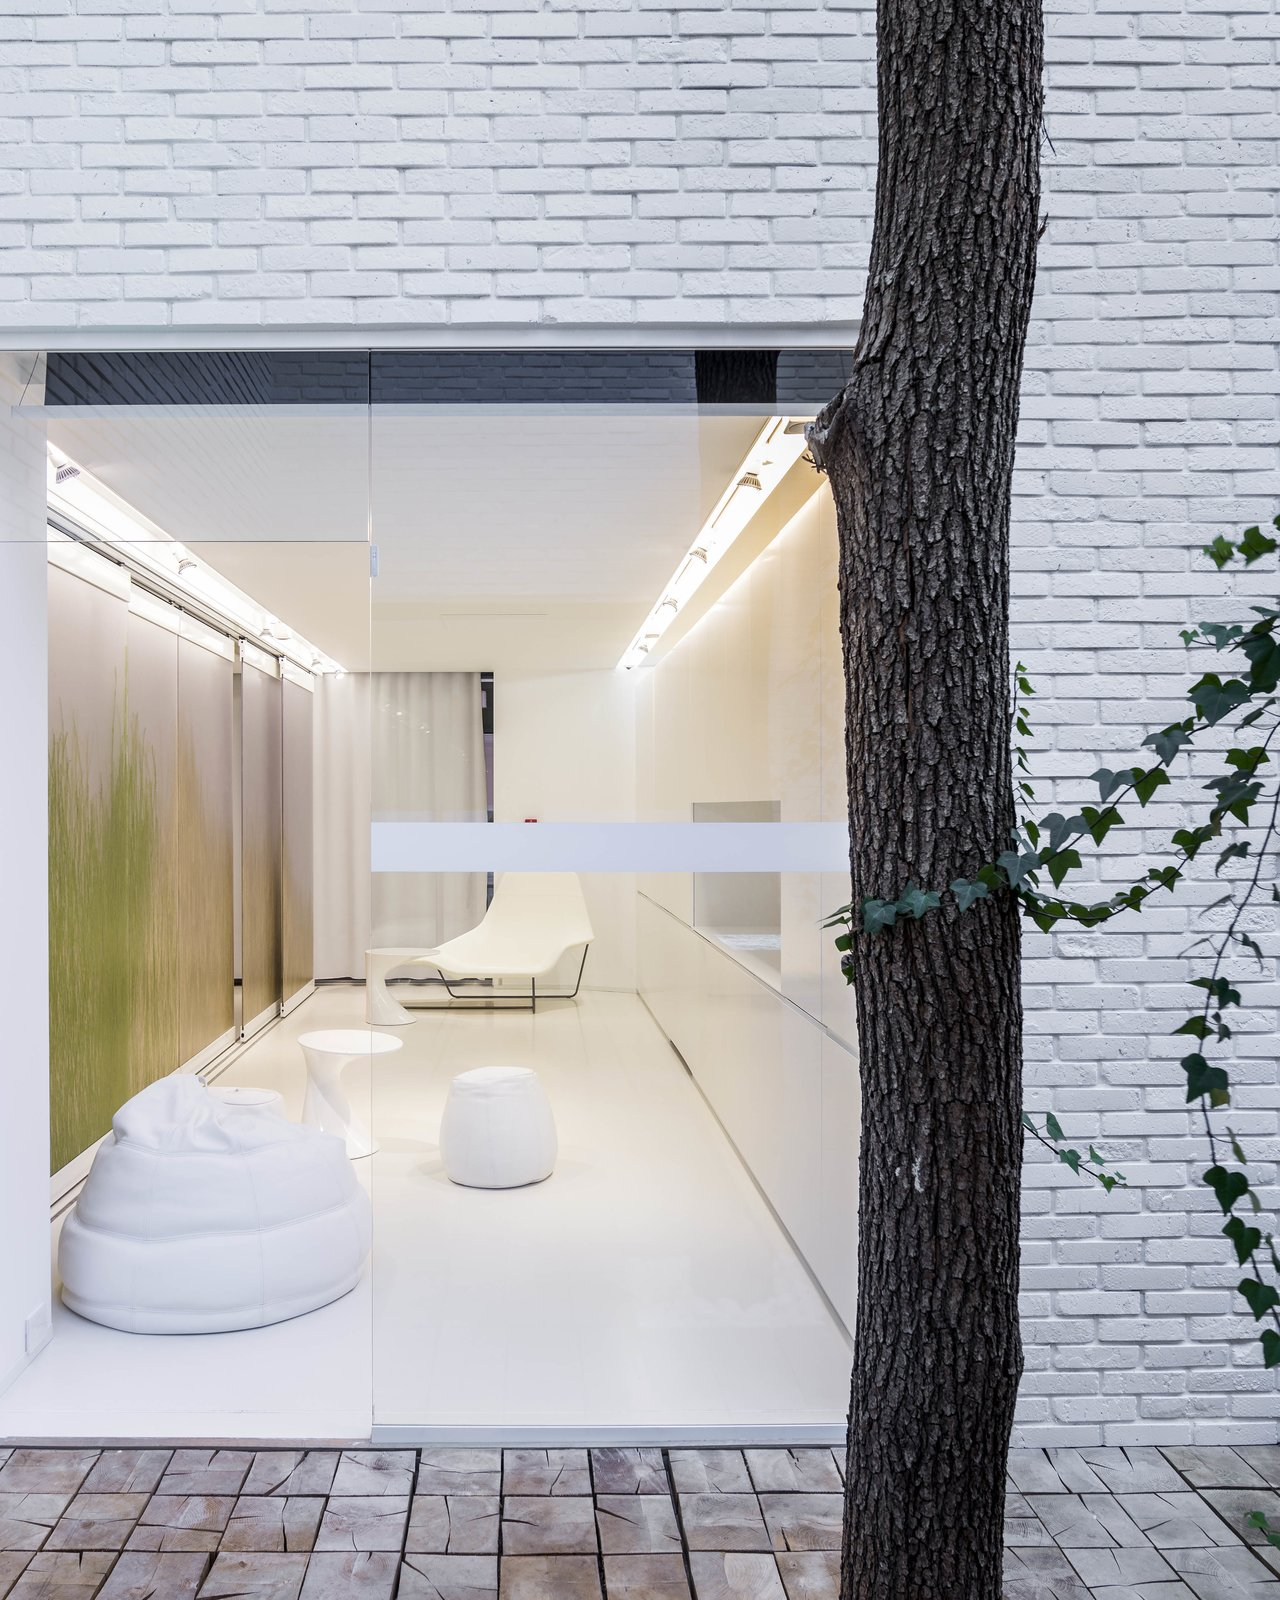 NArchitekTURA designed the apartment so it could also serve as a showroom, hotel room, or art gallery.  Photo 6 of 6 in A Vision of the 'Apartment of the Future' From Poland